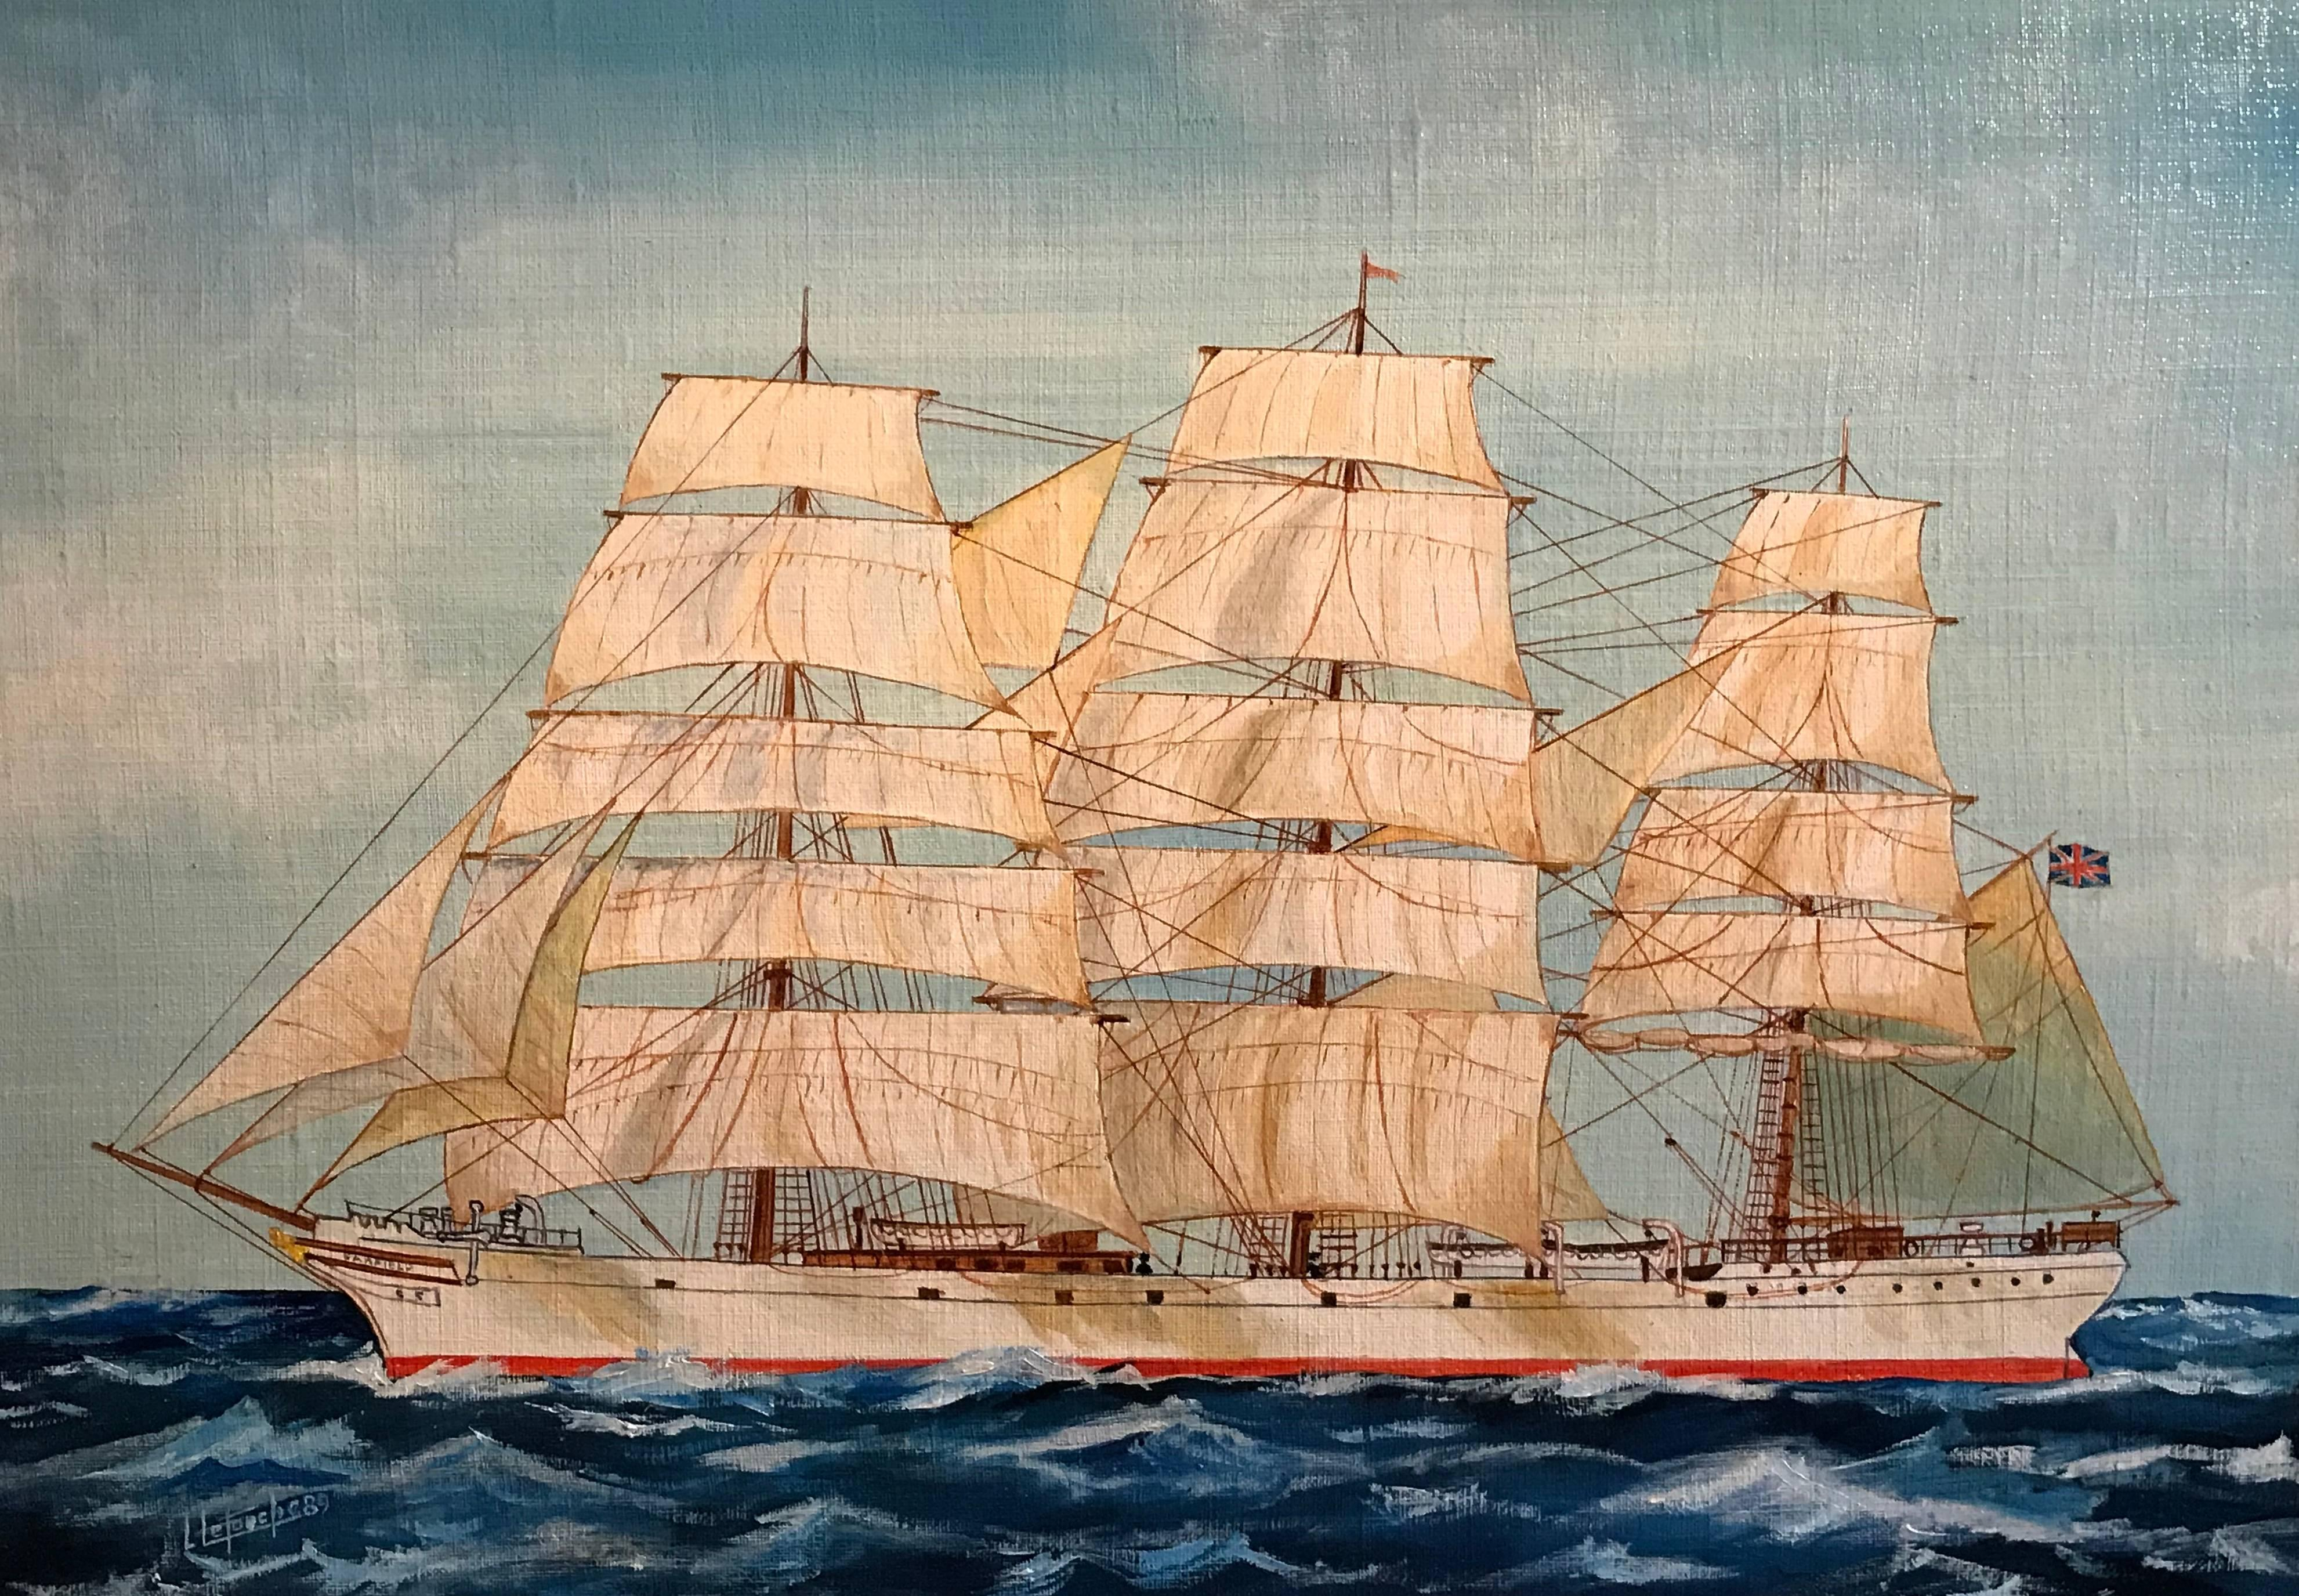 The Garfield, Ship Portrait Maritime Oil Painting